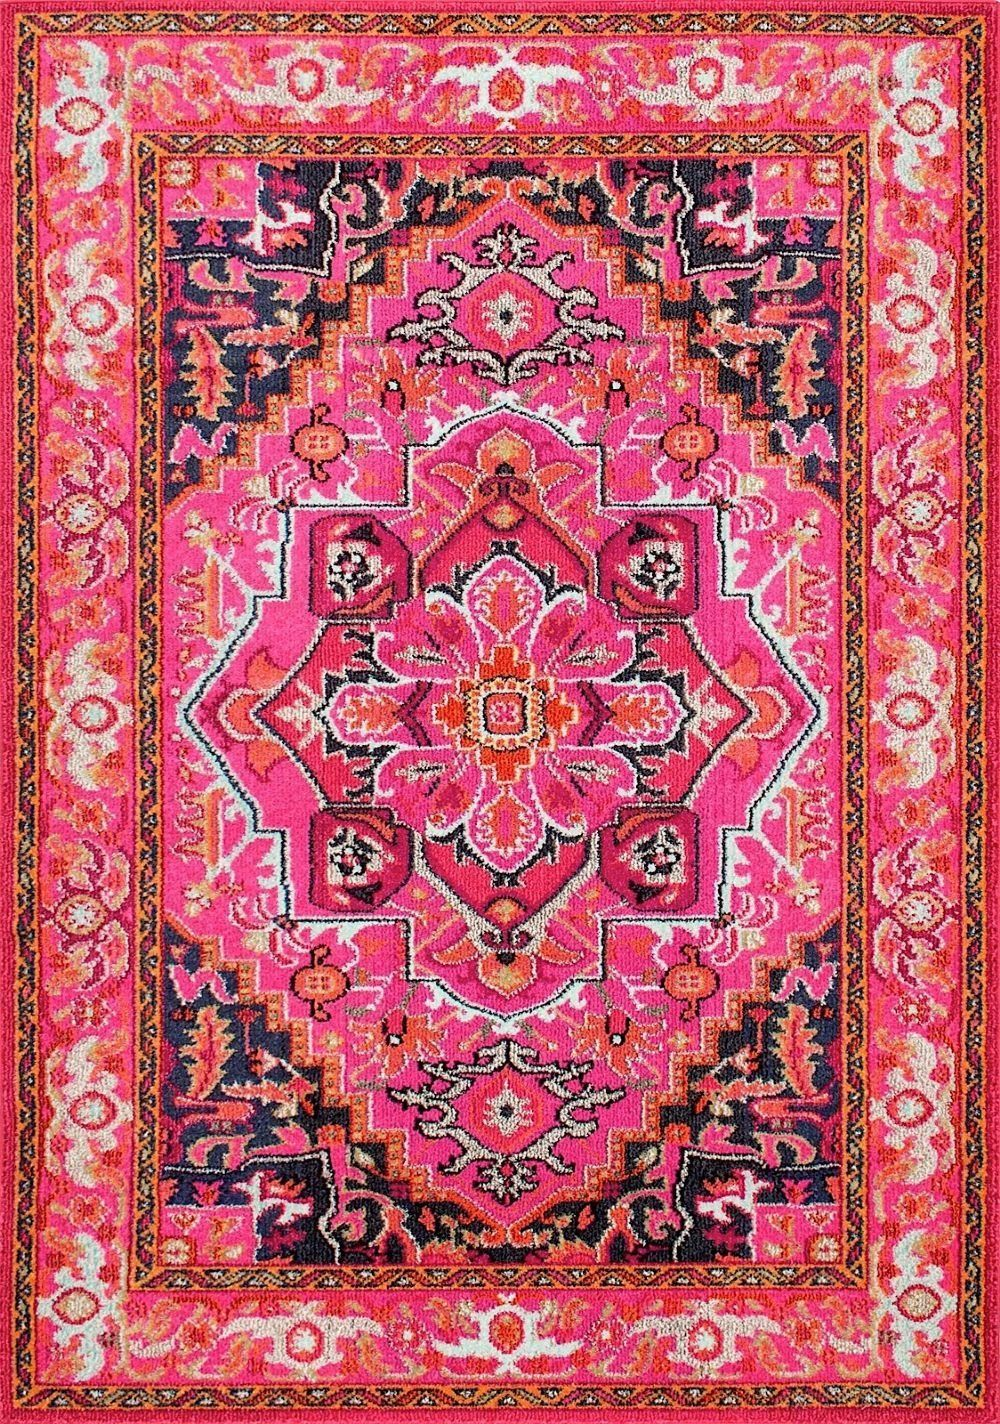 """Amazon.com: NuLoom Traditional Rectangle Area Rug 6'7""""x9' in Violet Pink Color From Vintage Mackenzie Collection: Kitchen & Dining"""